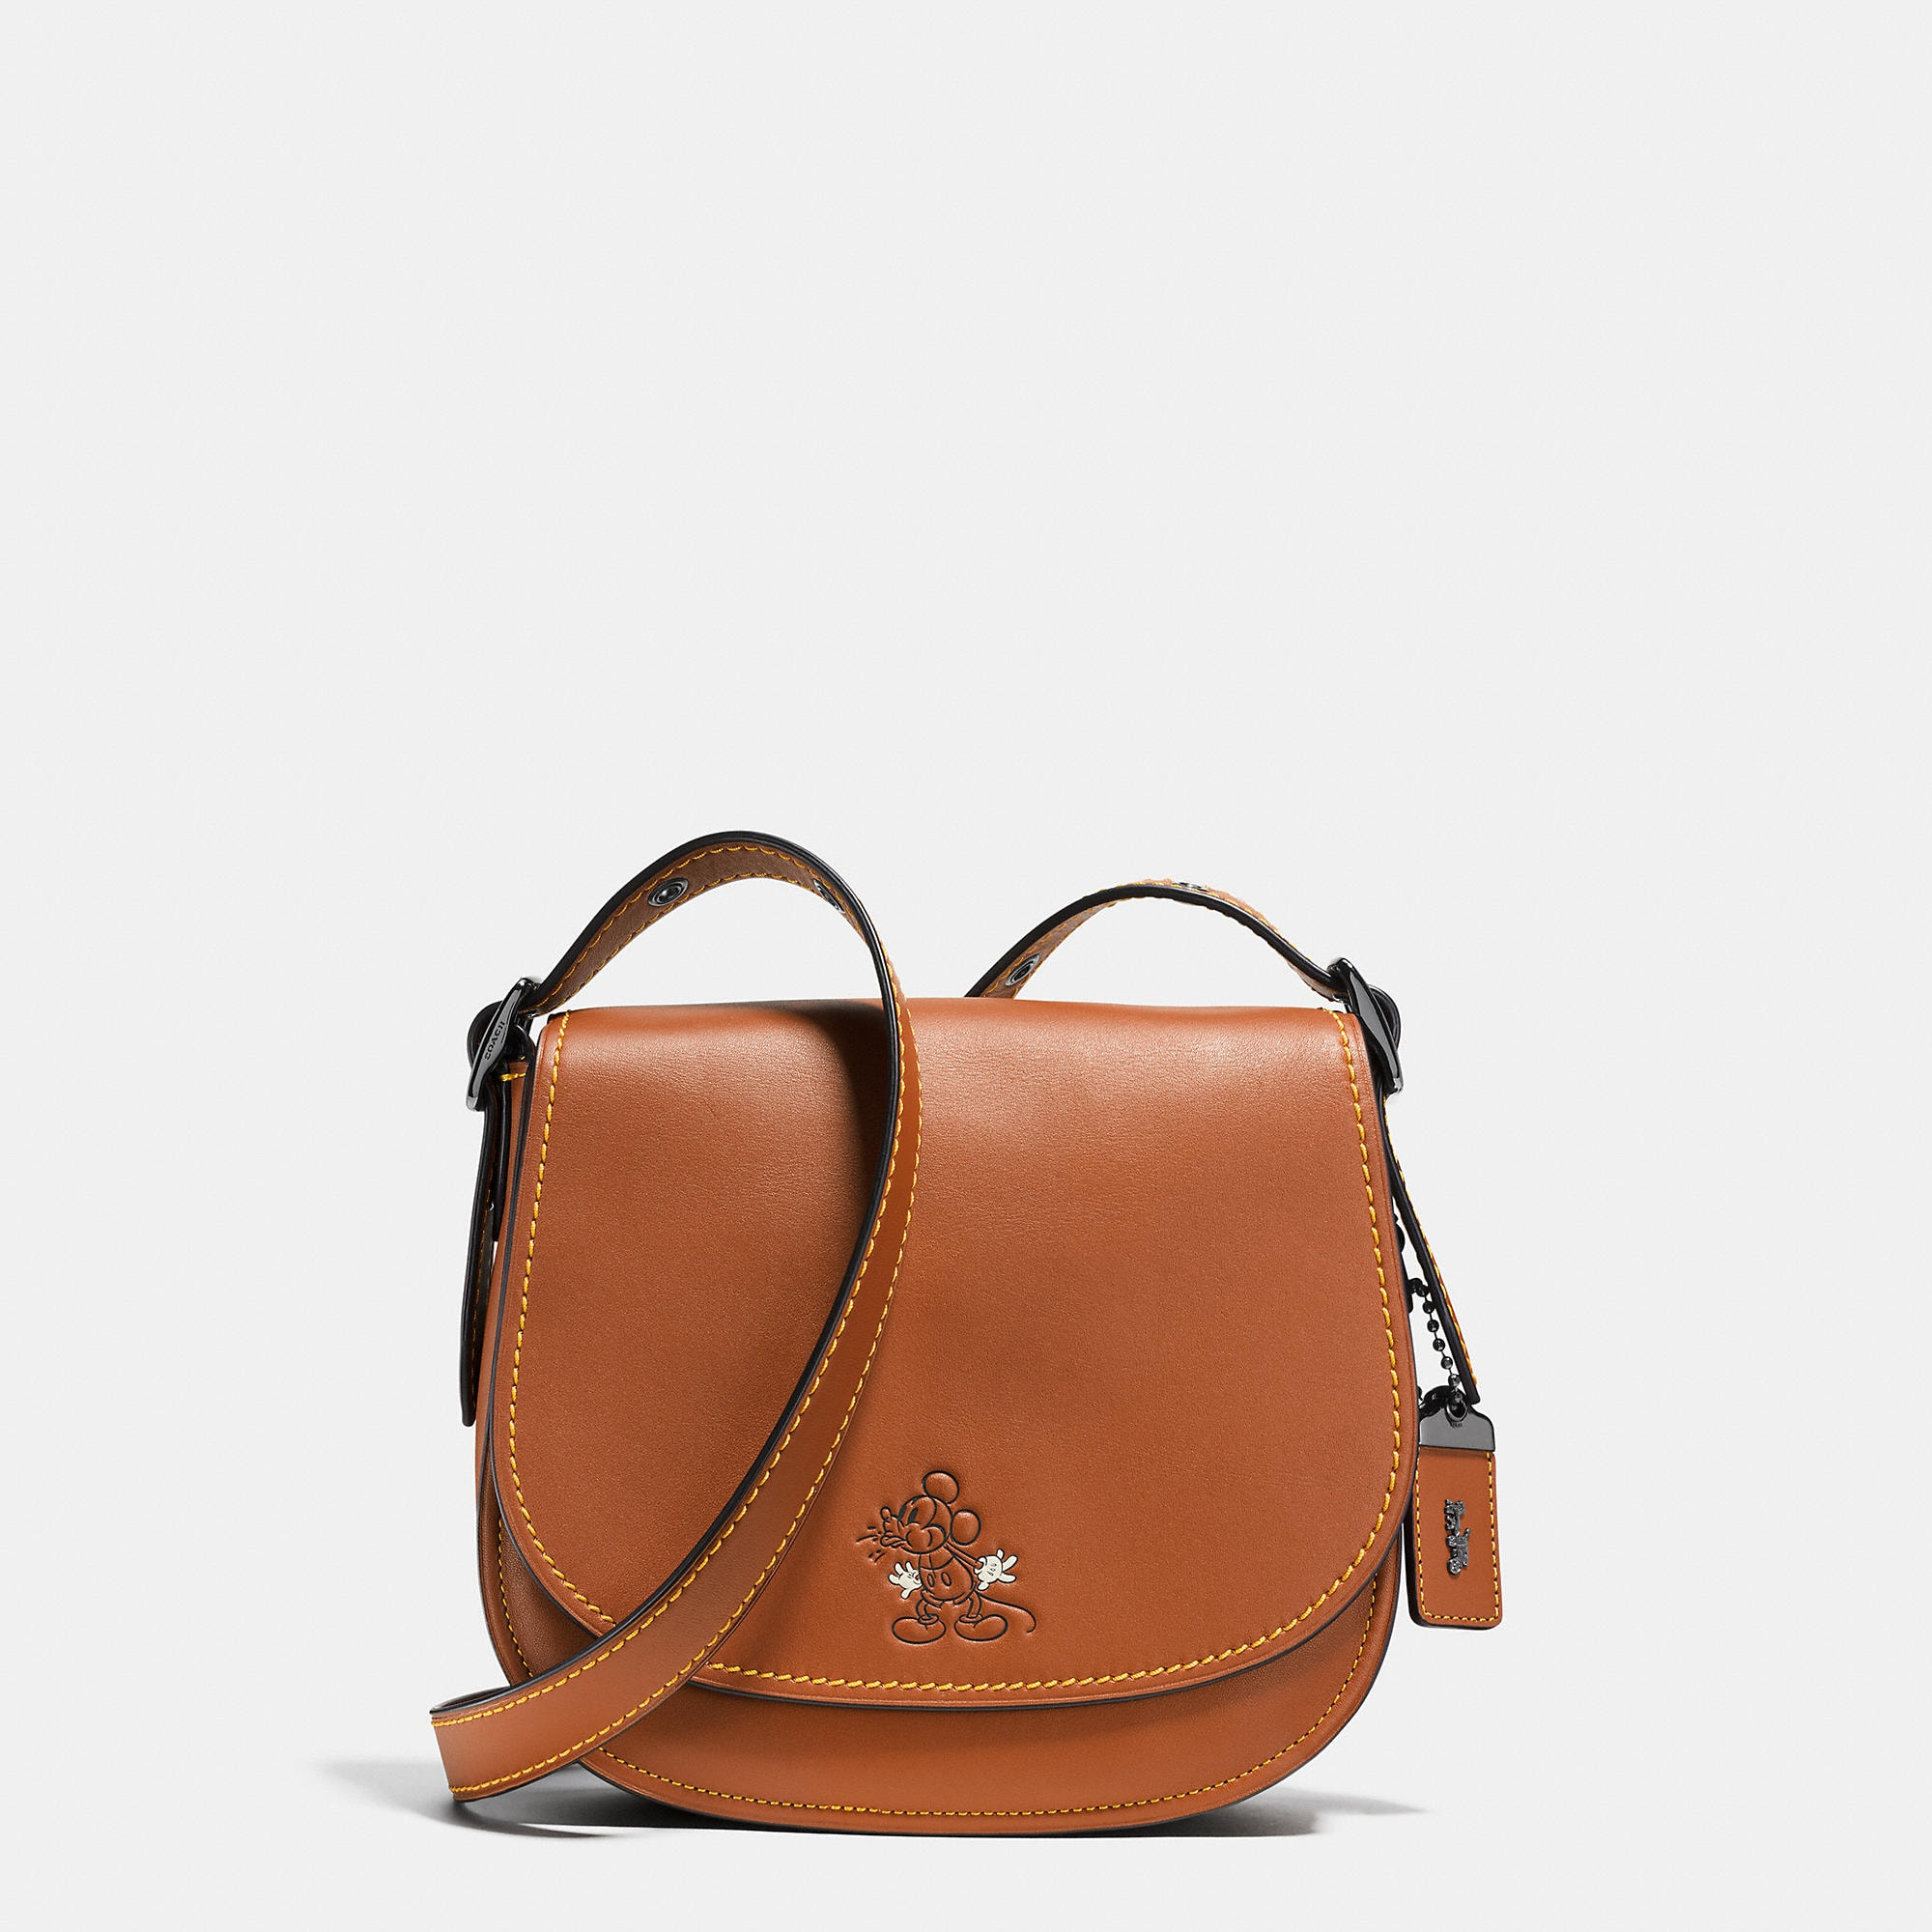 Coach Mickey Saddle Bag 23 In Glovetanned Leather - Disney